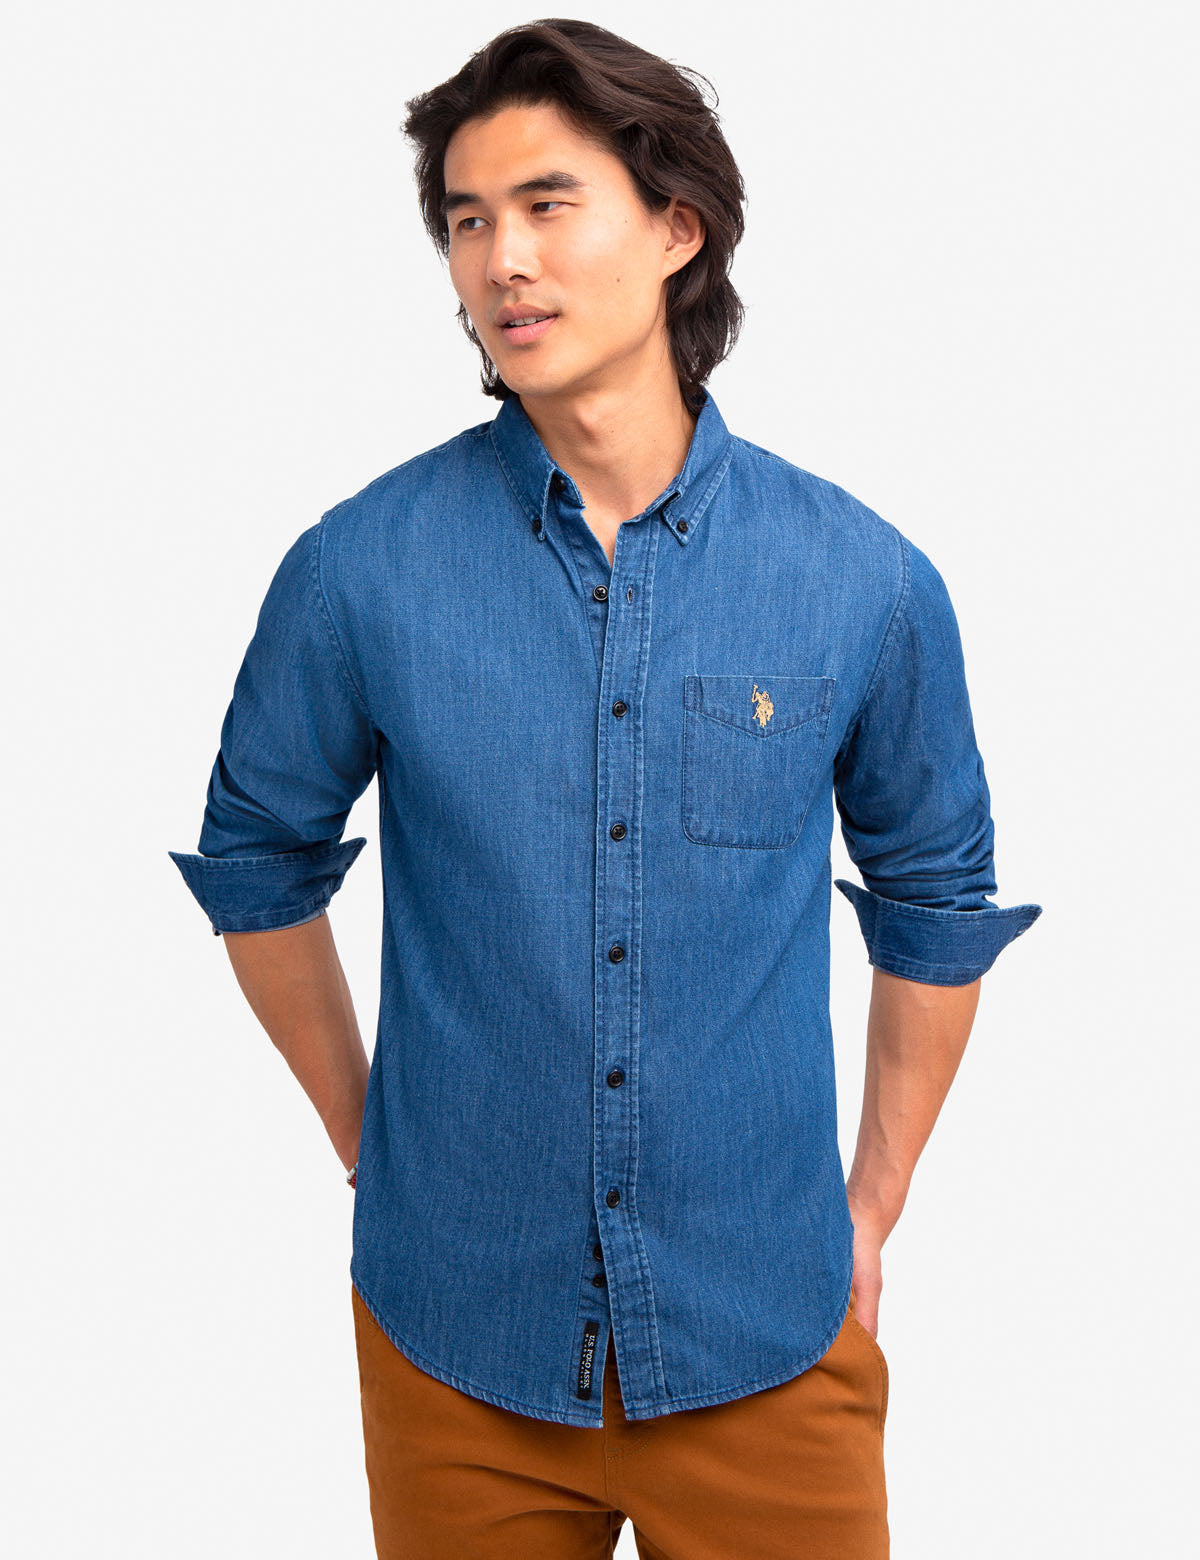 BLACK MALLET SLIM FIT DENIM SHIRT